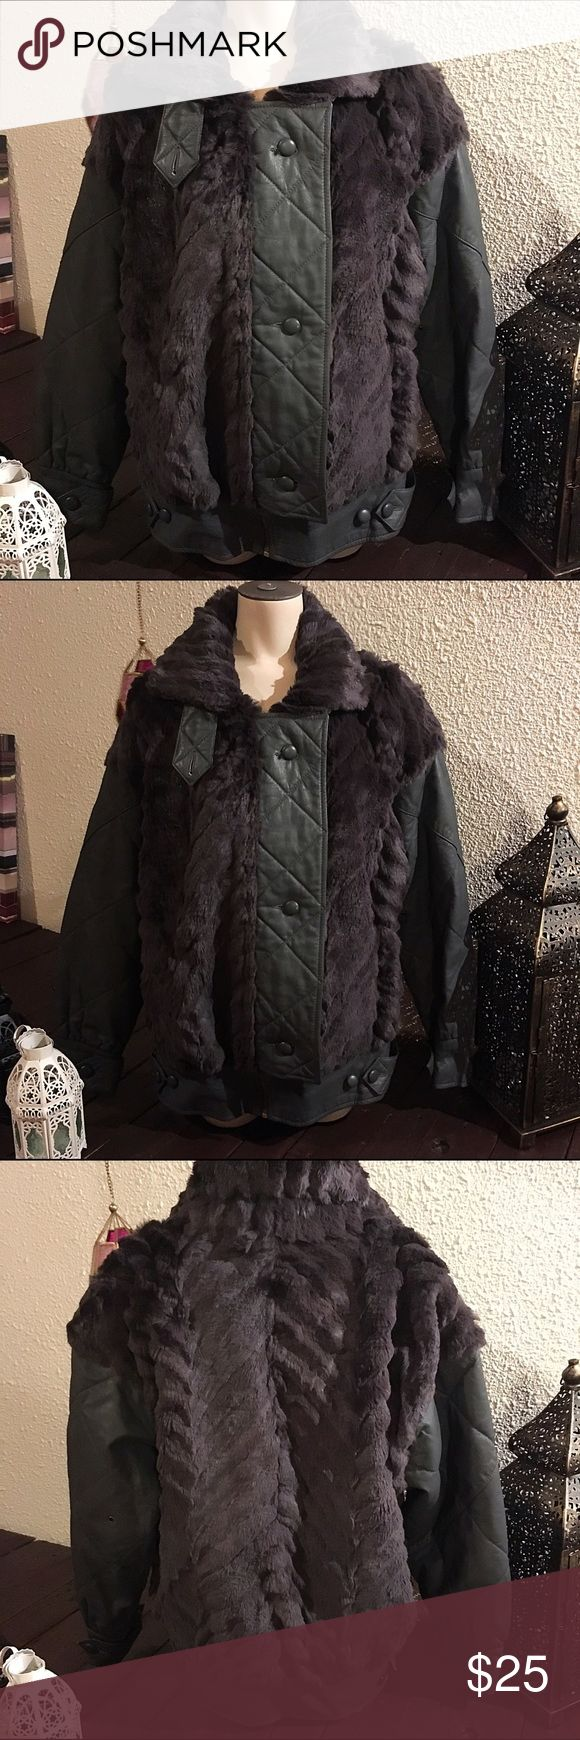 Faux fur and leather bomber jacket Faux fur and leather bomber jacket. Feels just like real fur. Only worn once. Jackets & Coats